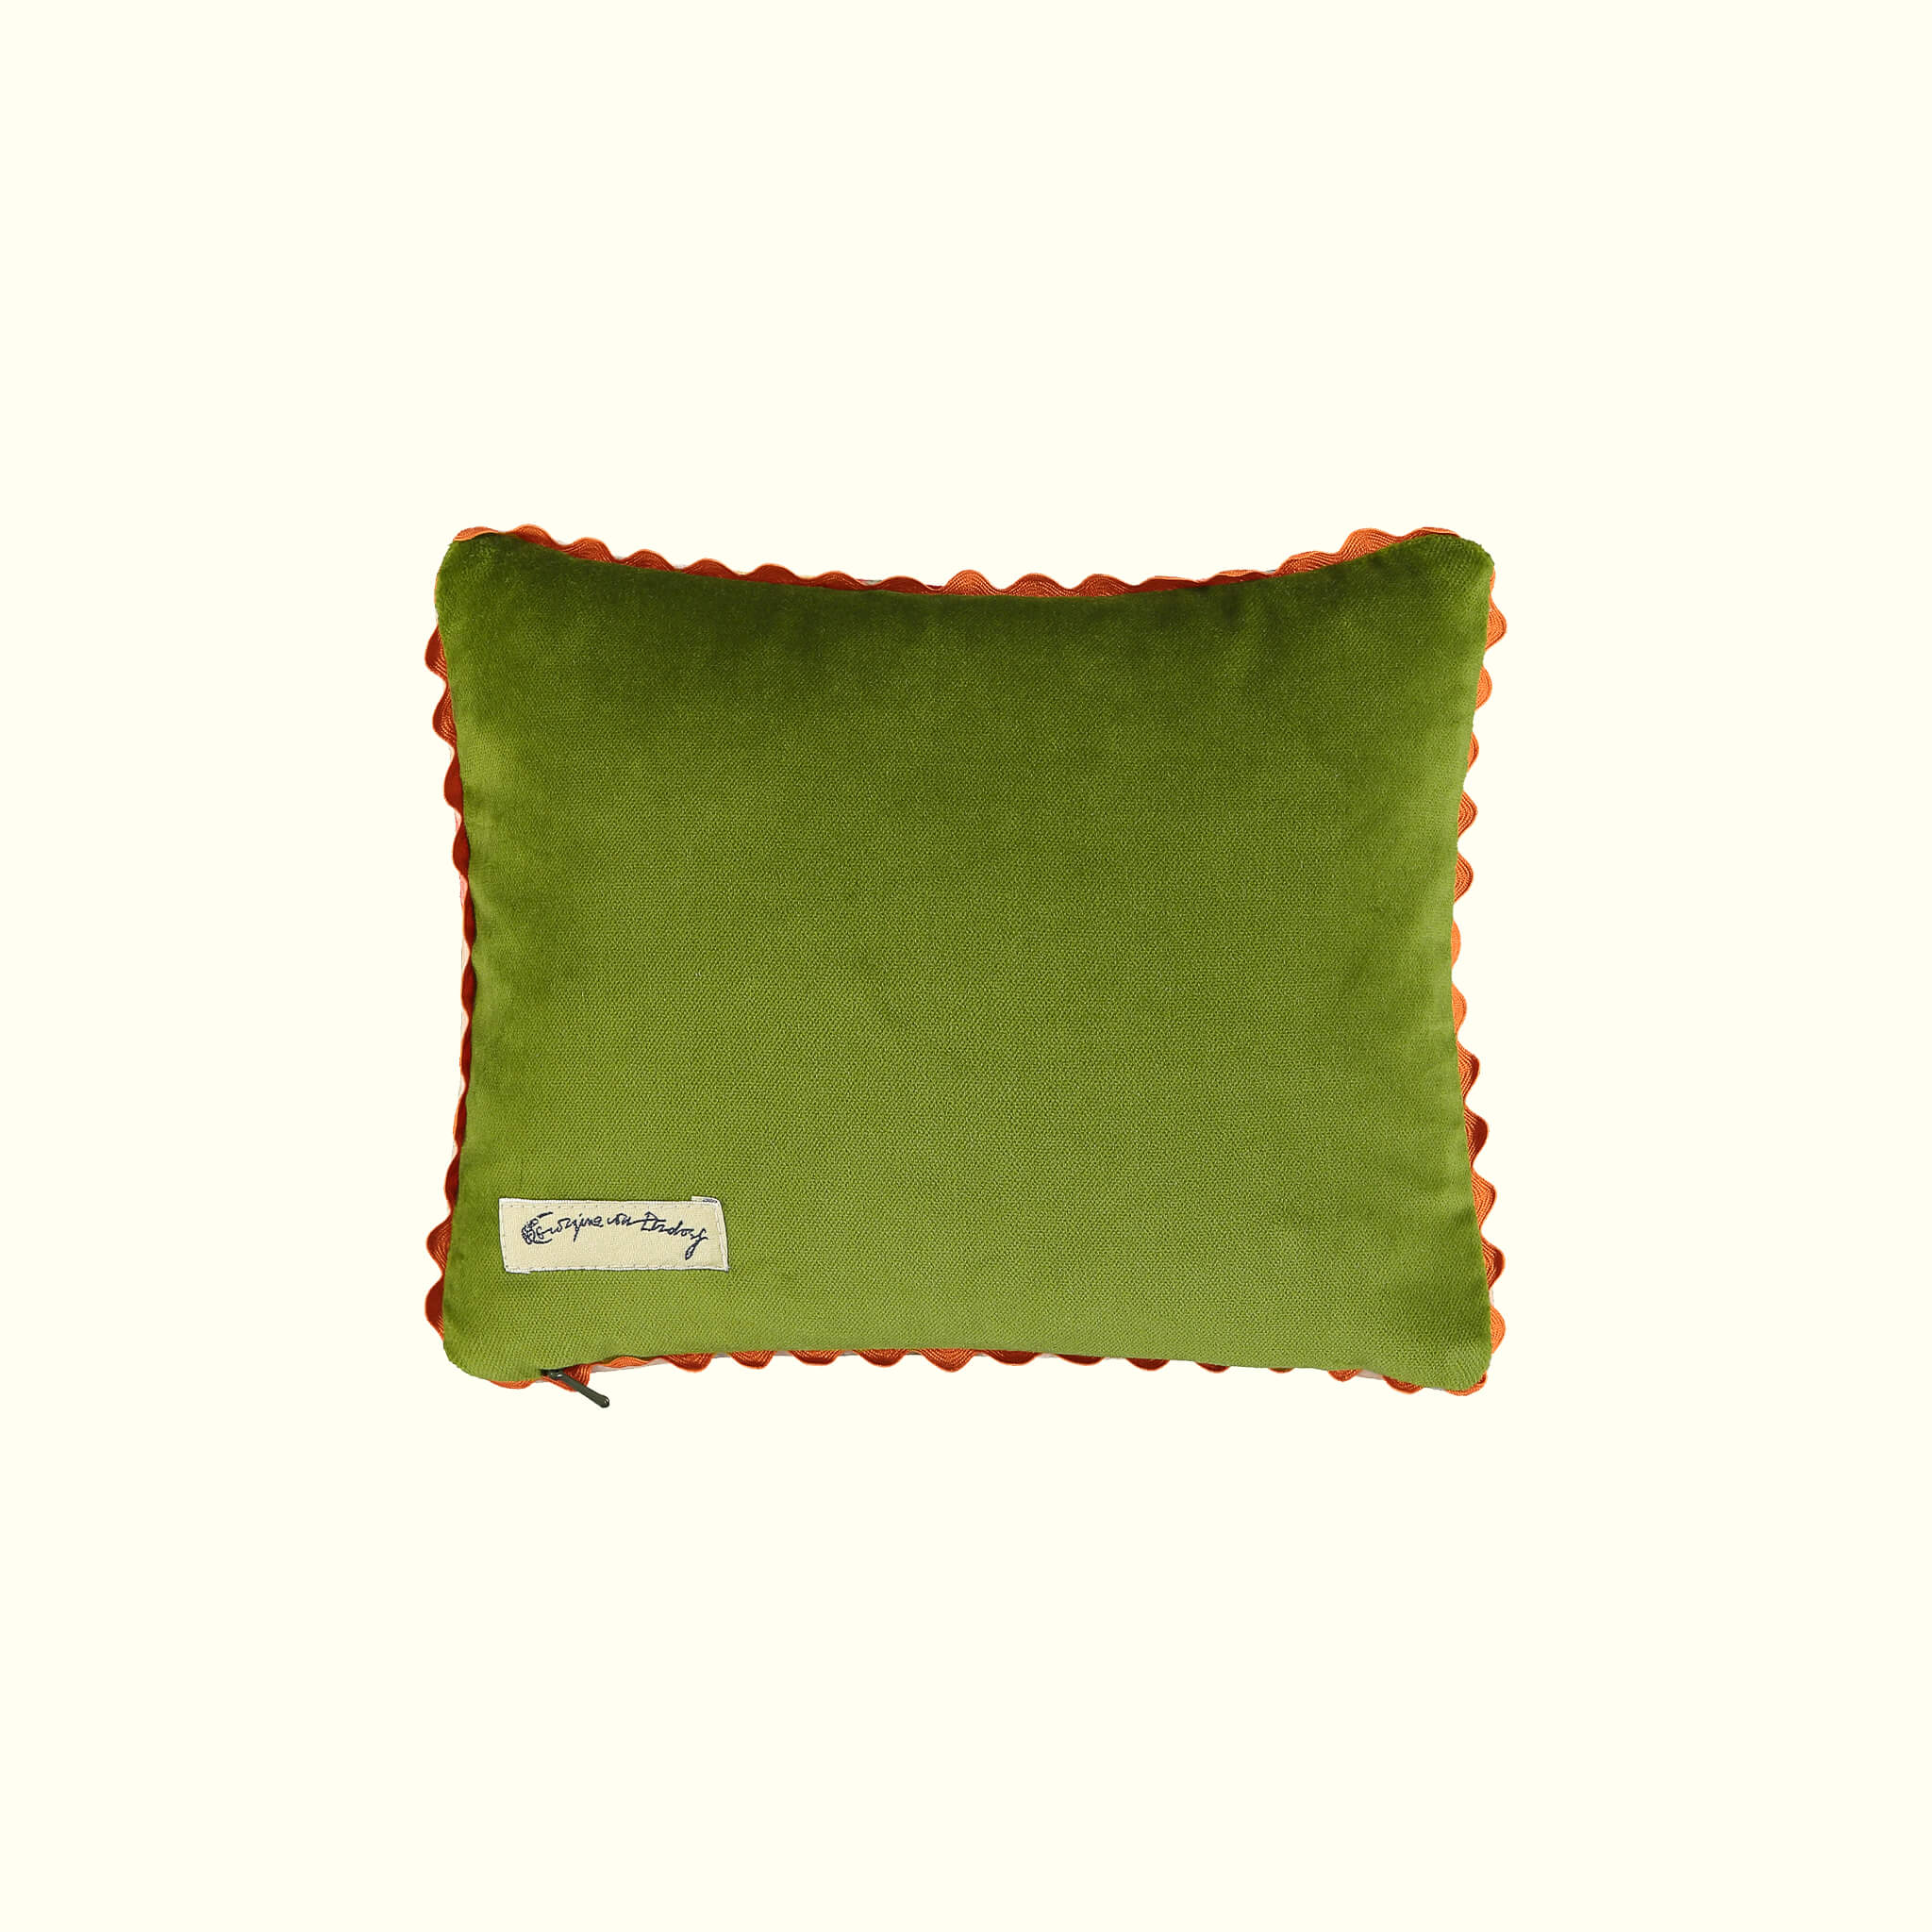 A luxury British cotton velvet travel pillow by GVE in cream and scarlet Ranunculus print design.